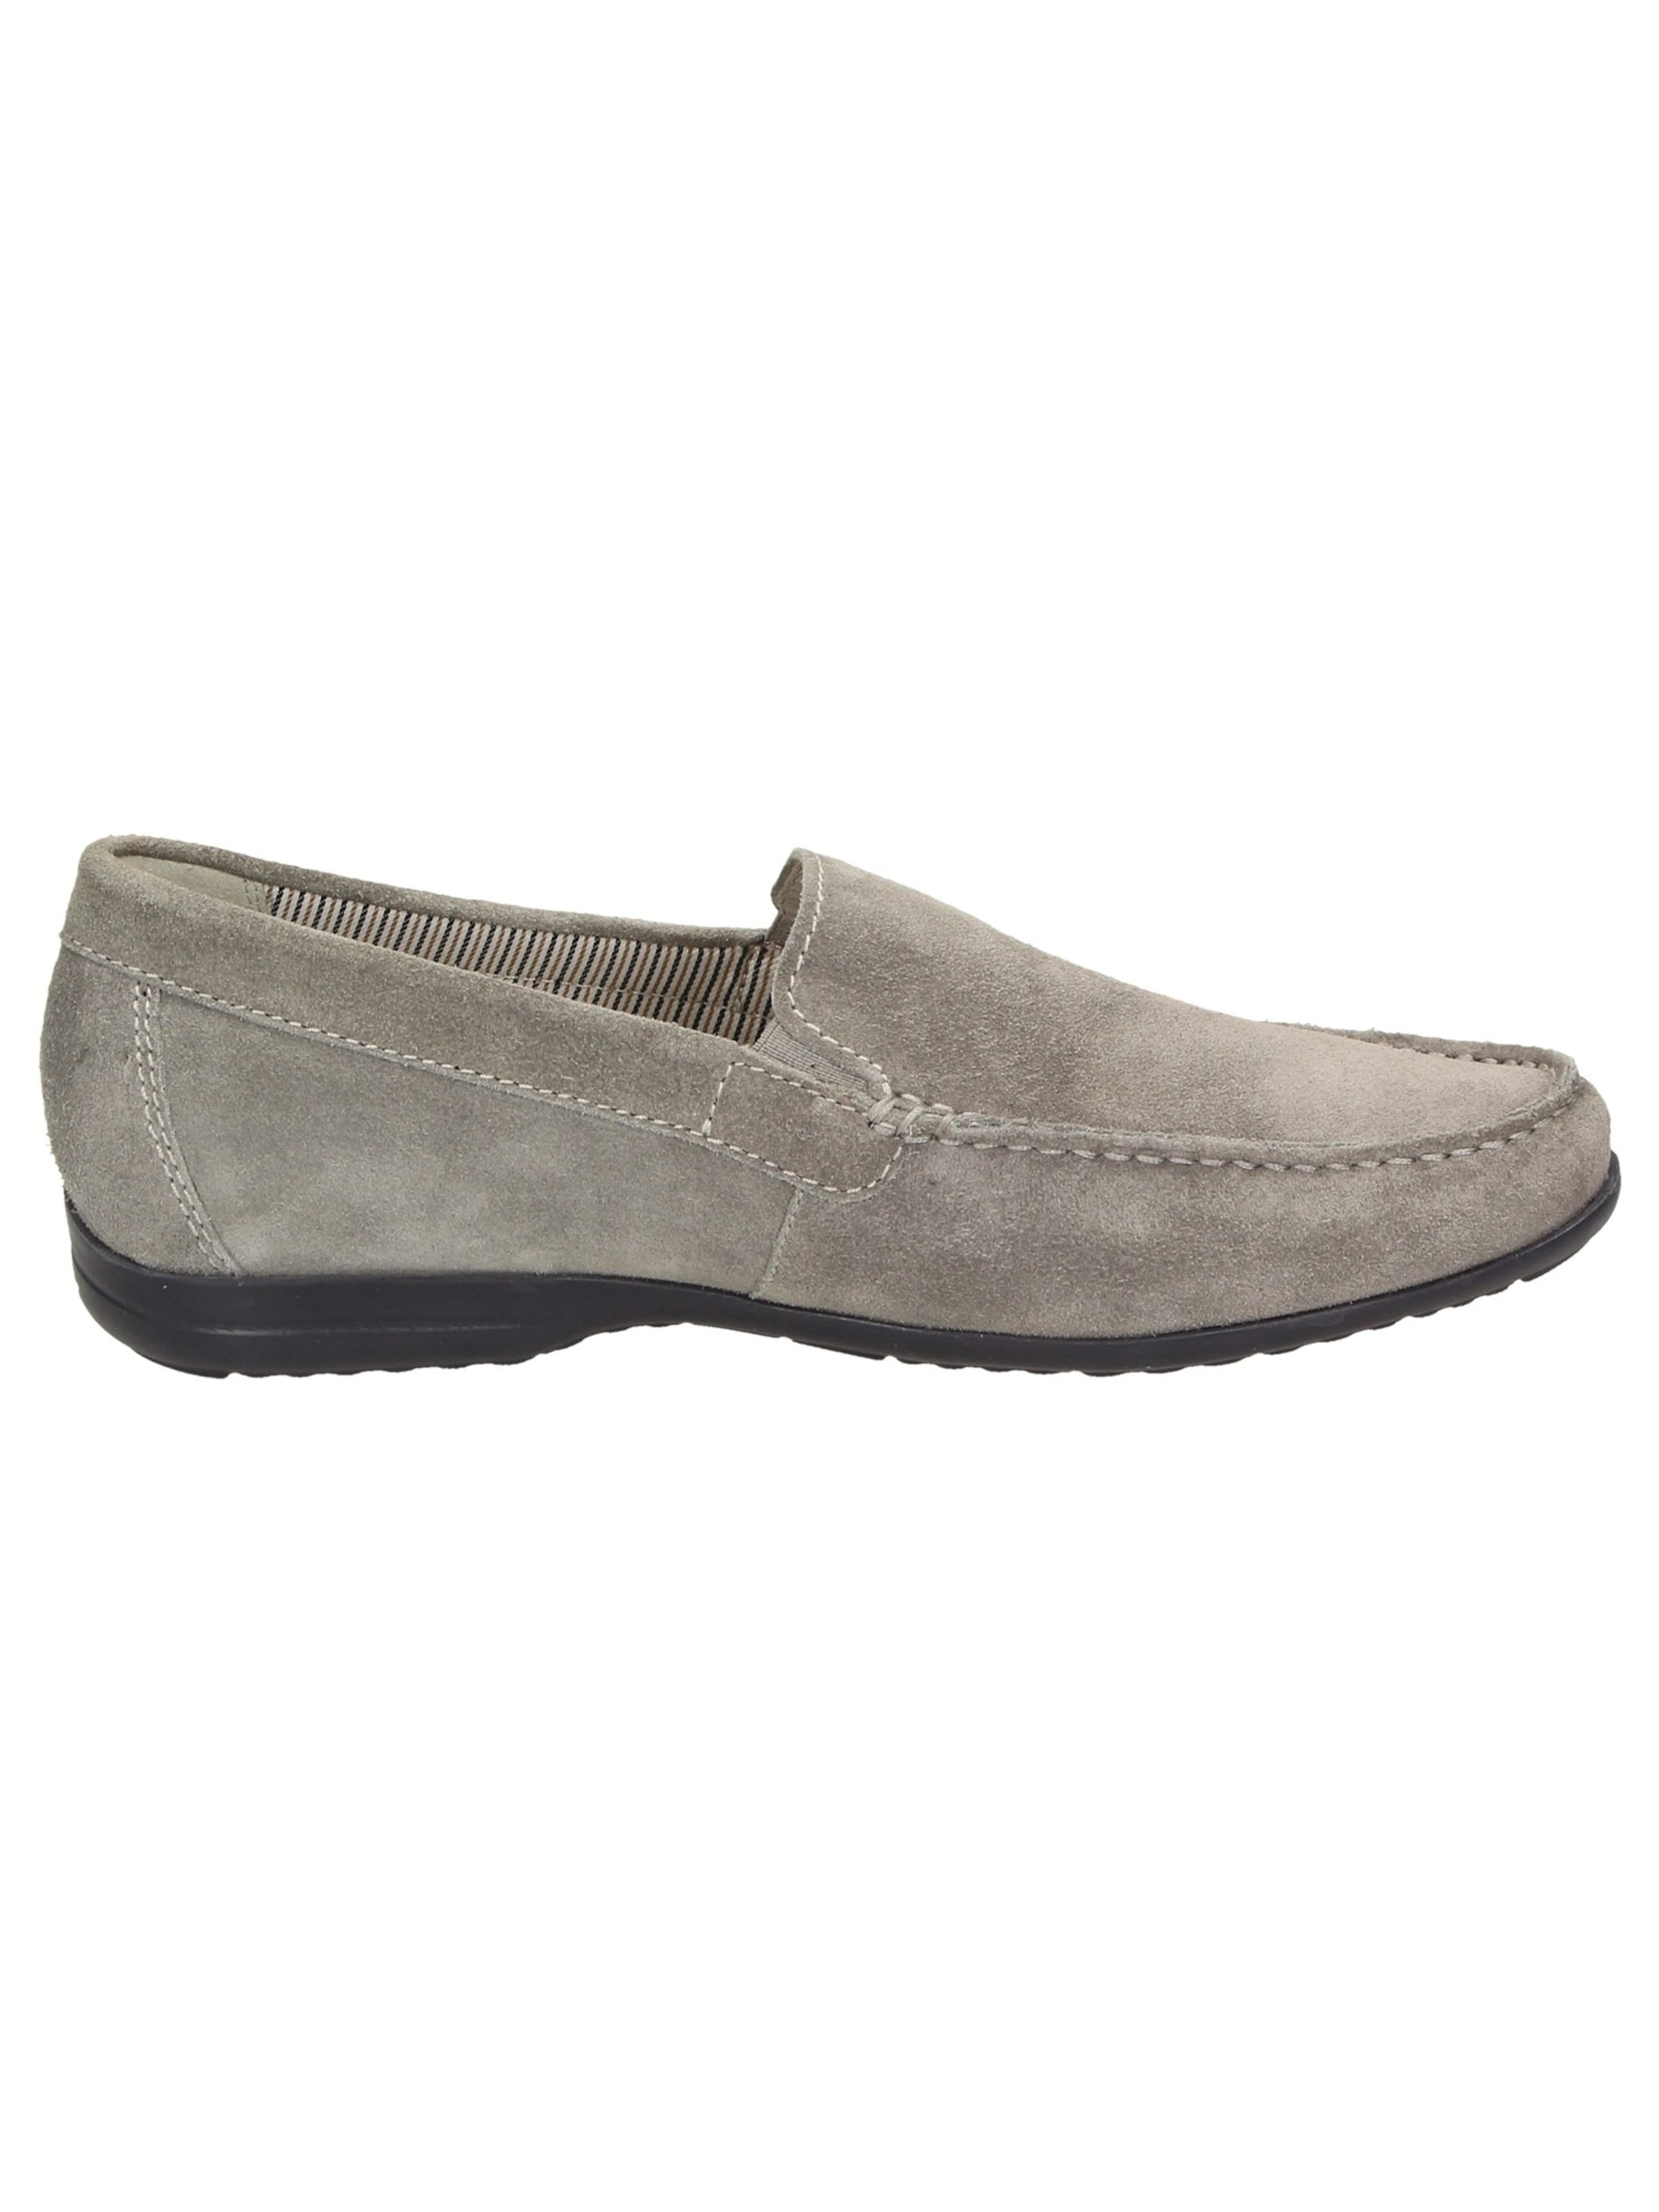 Sioux Slipper In 'giumelo 700' Grau FJlc3TK1u